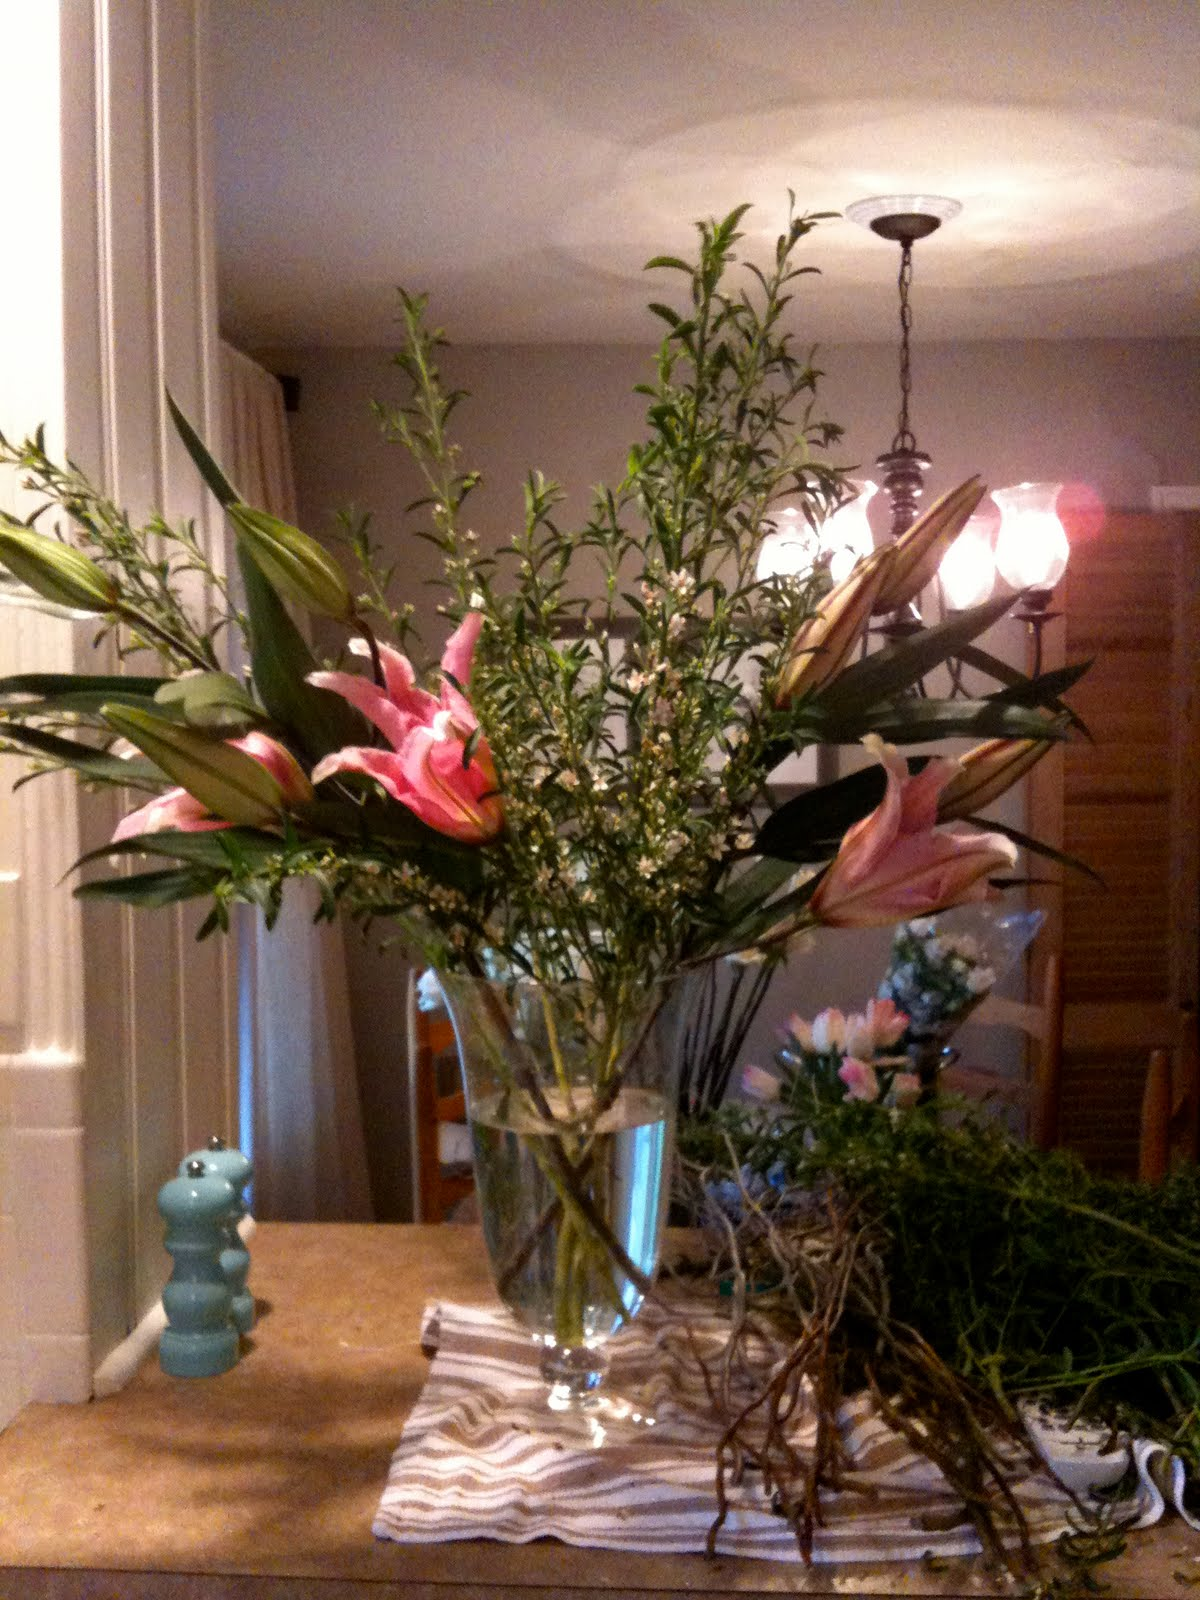 Jenny steffens hobick diy large flower arrangement